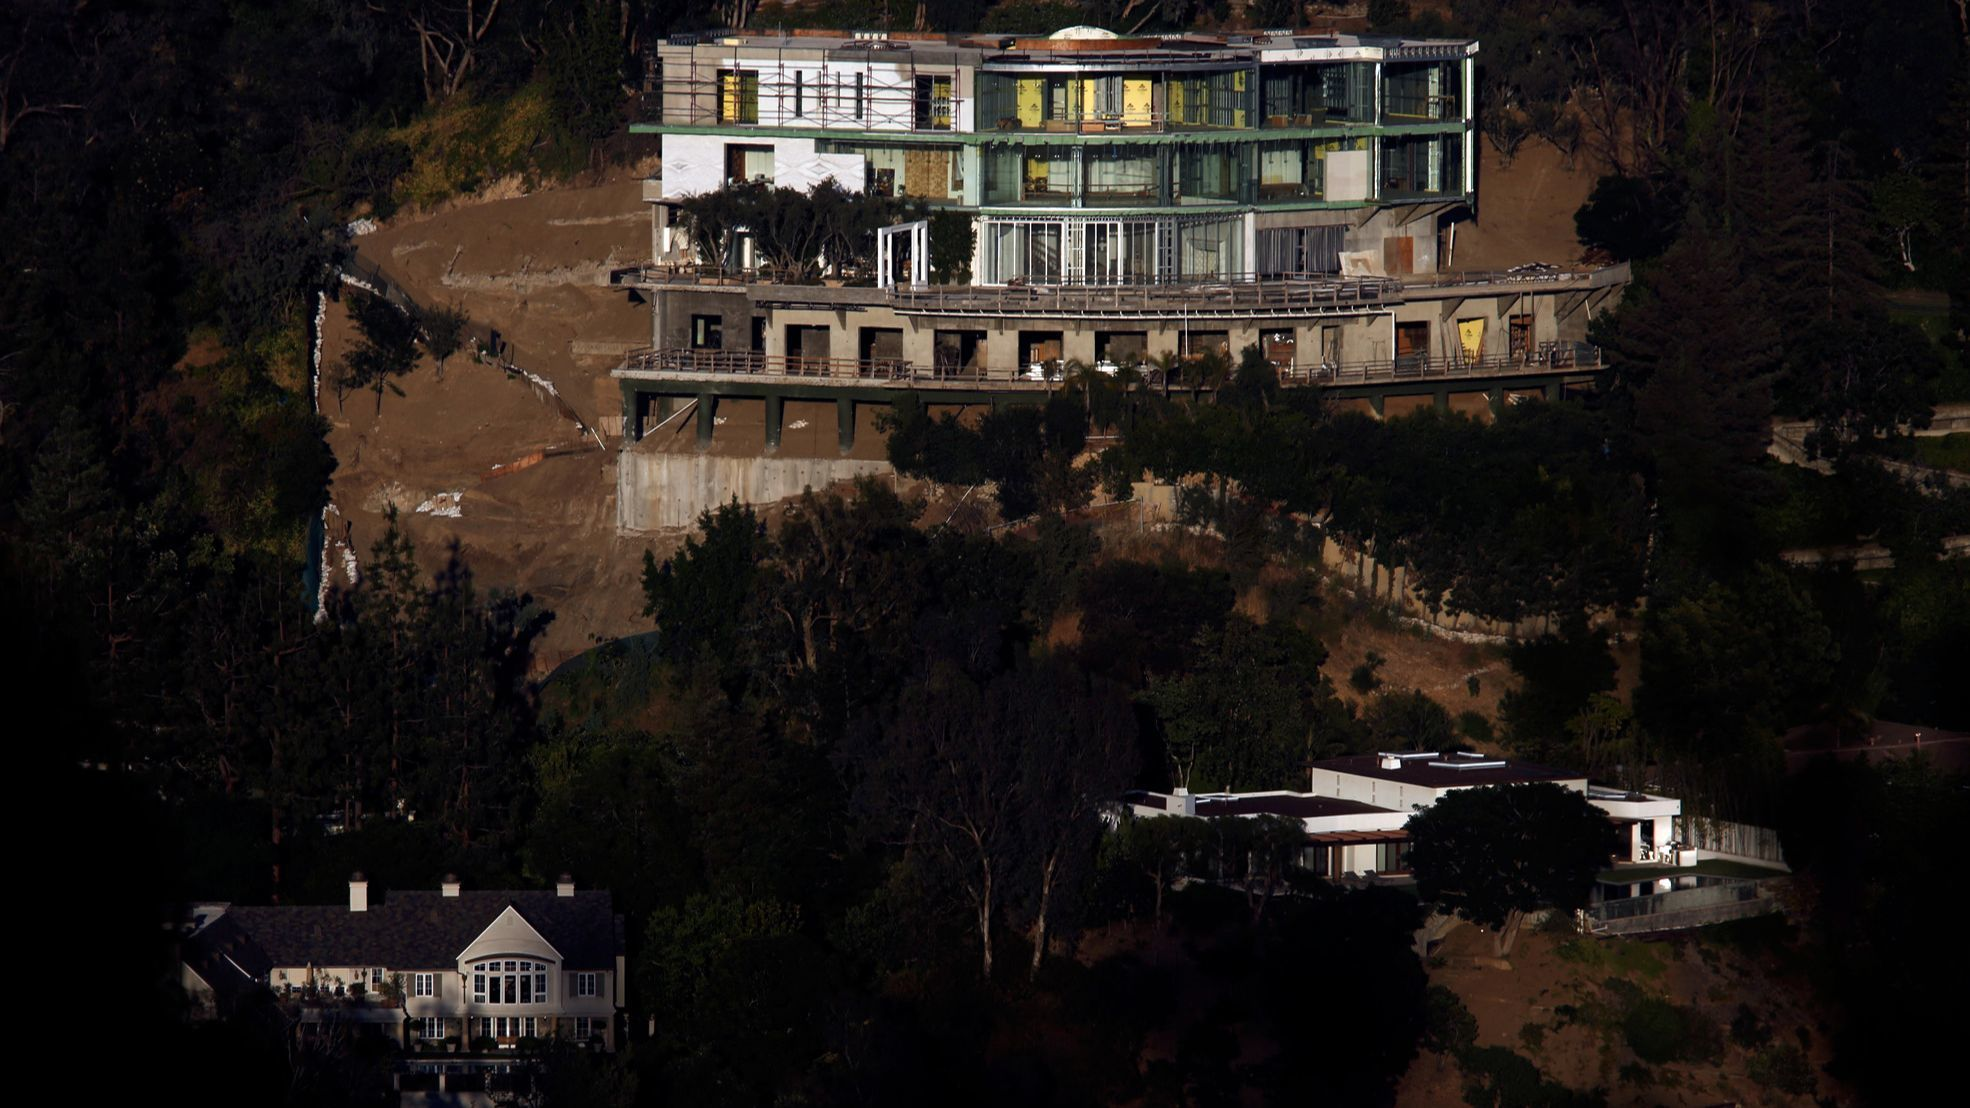 The unfinished mansion towers over a pair of homes in Bel-Air.